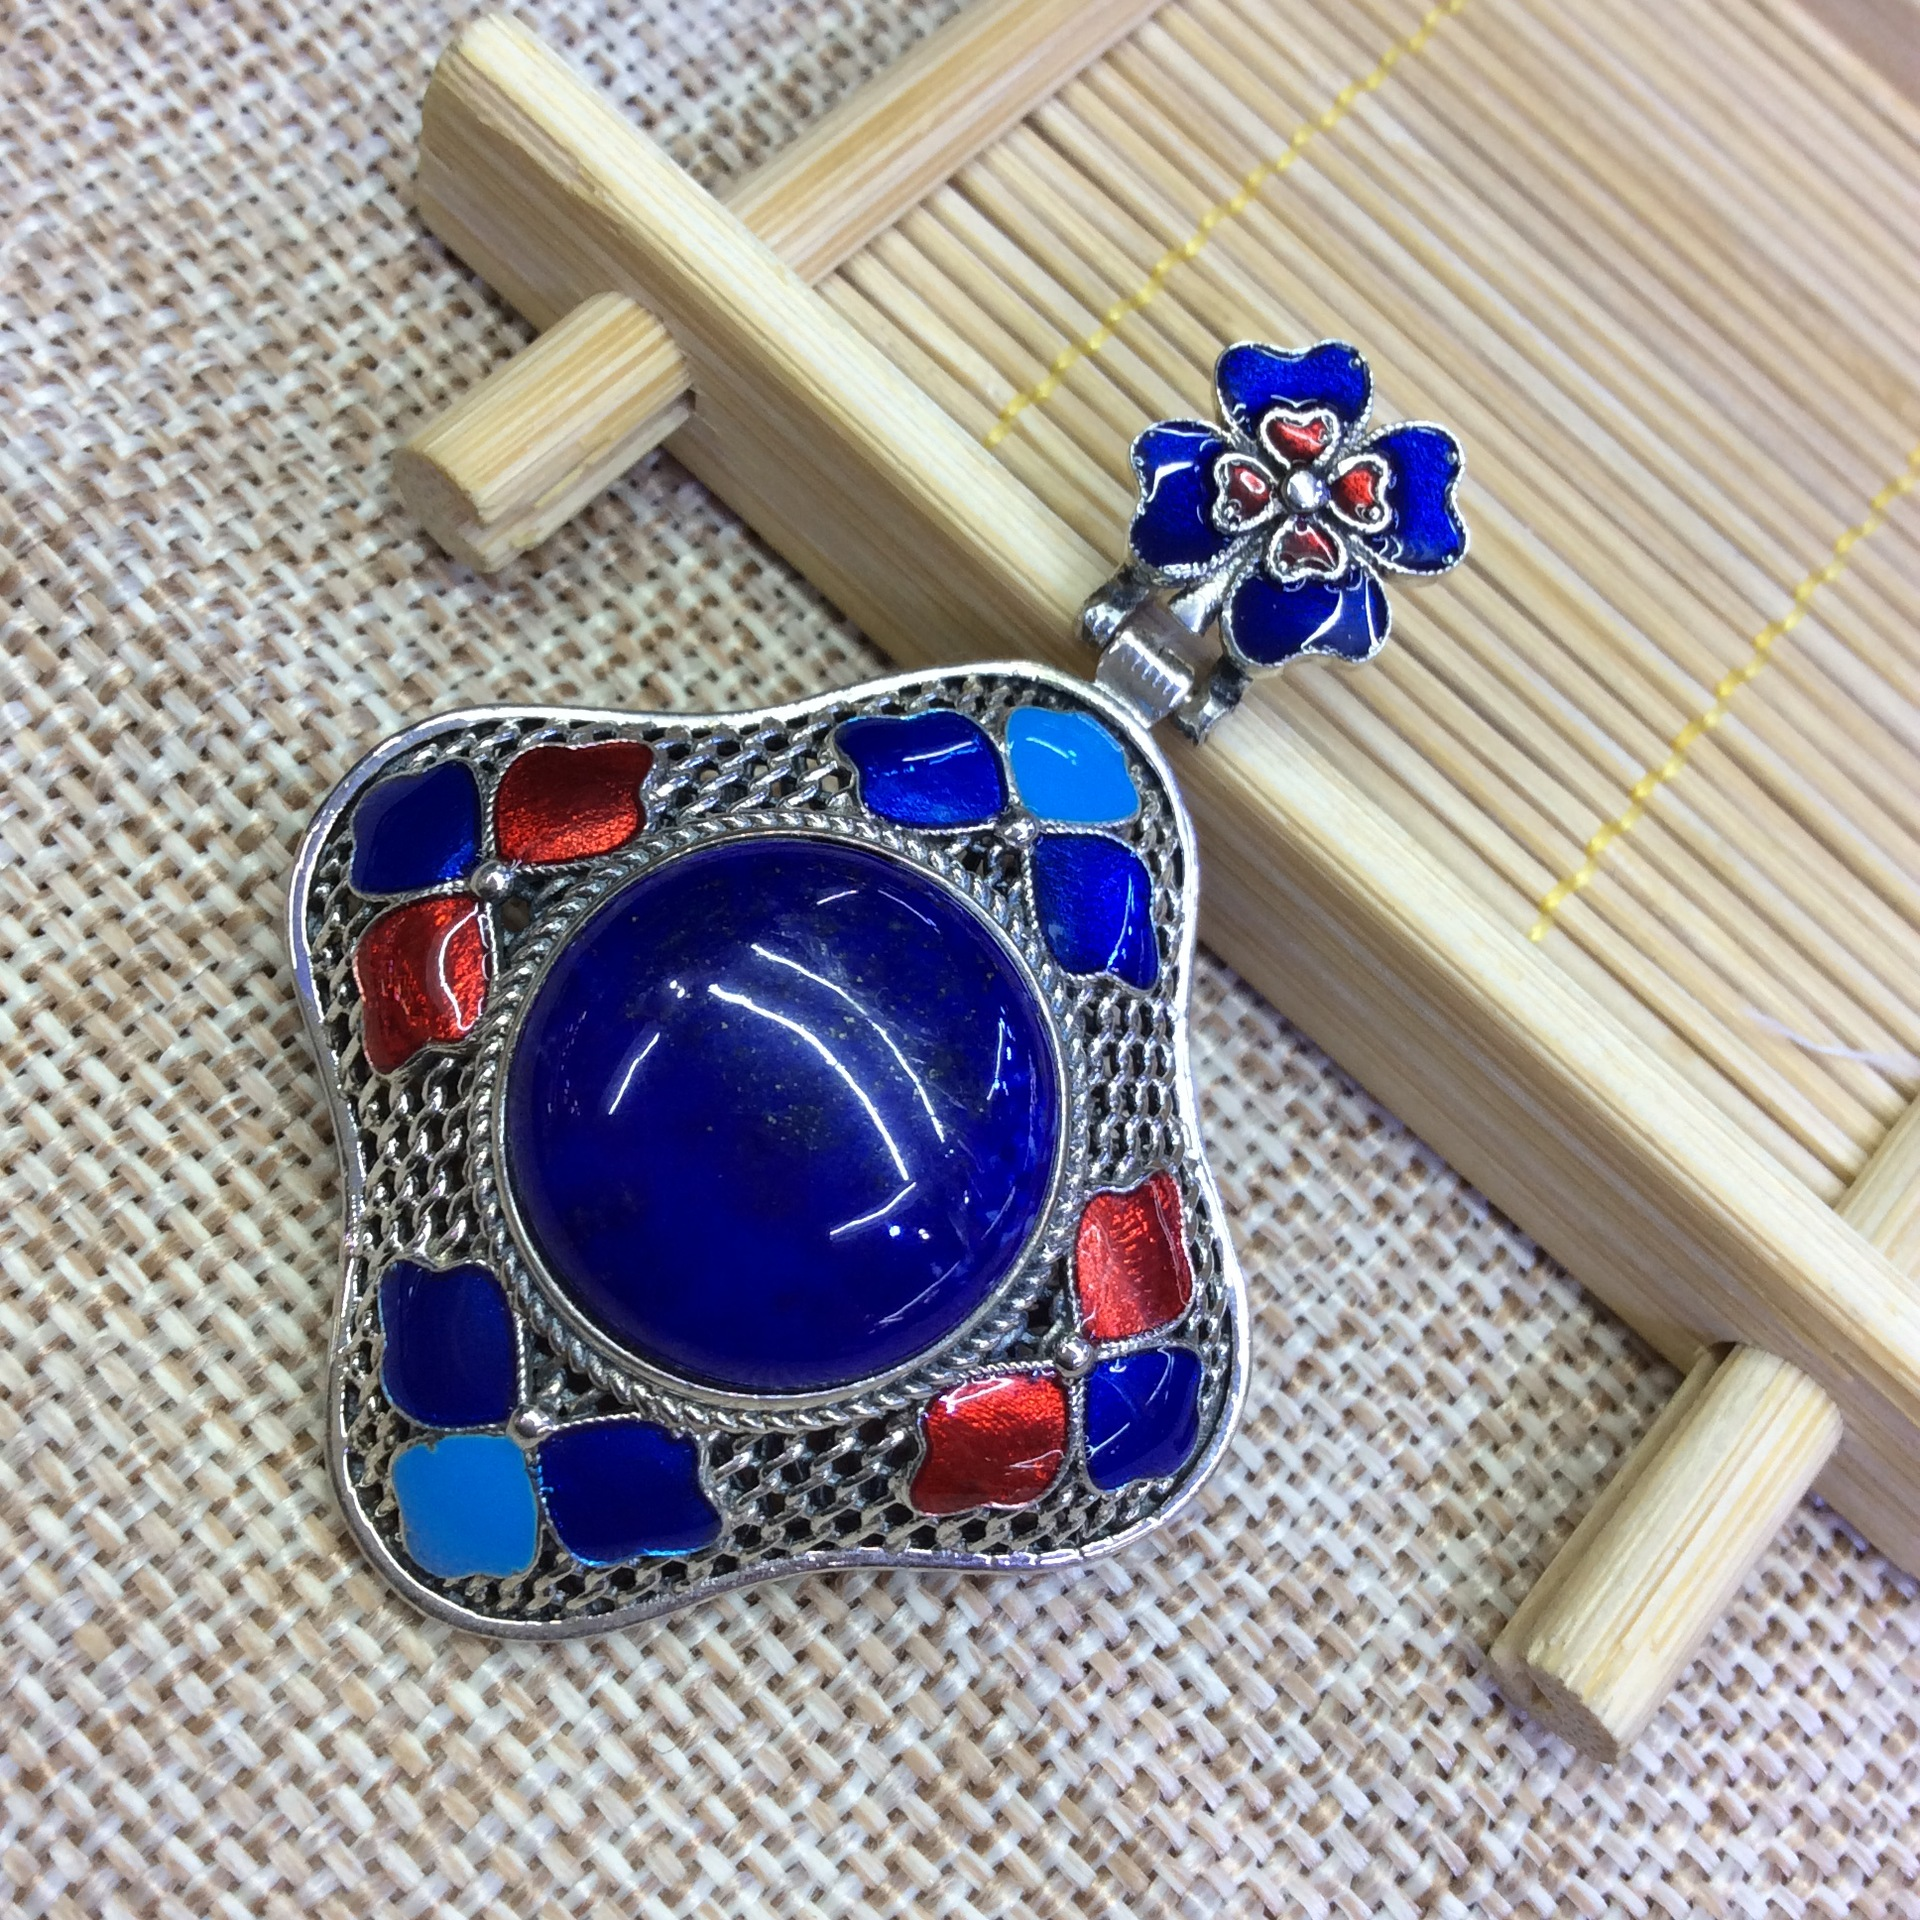 [S925] longnice silver silver inlaid pure natural lapis lazuli stone filigree Cloisonne pendant ornaments цена